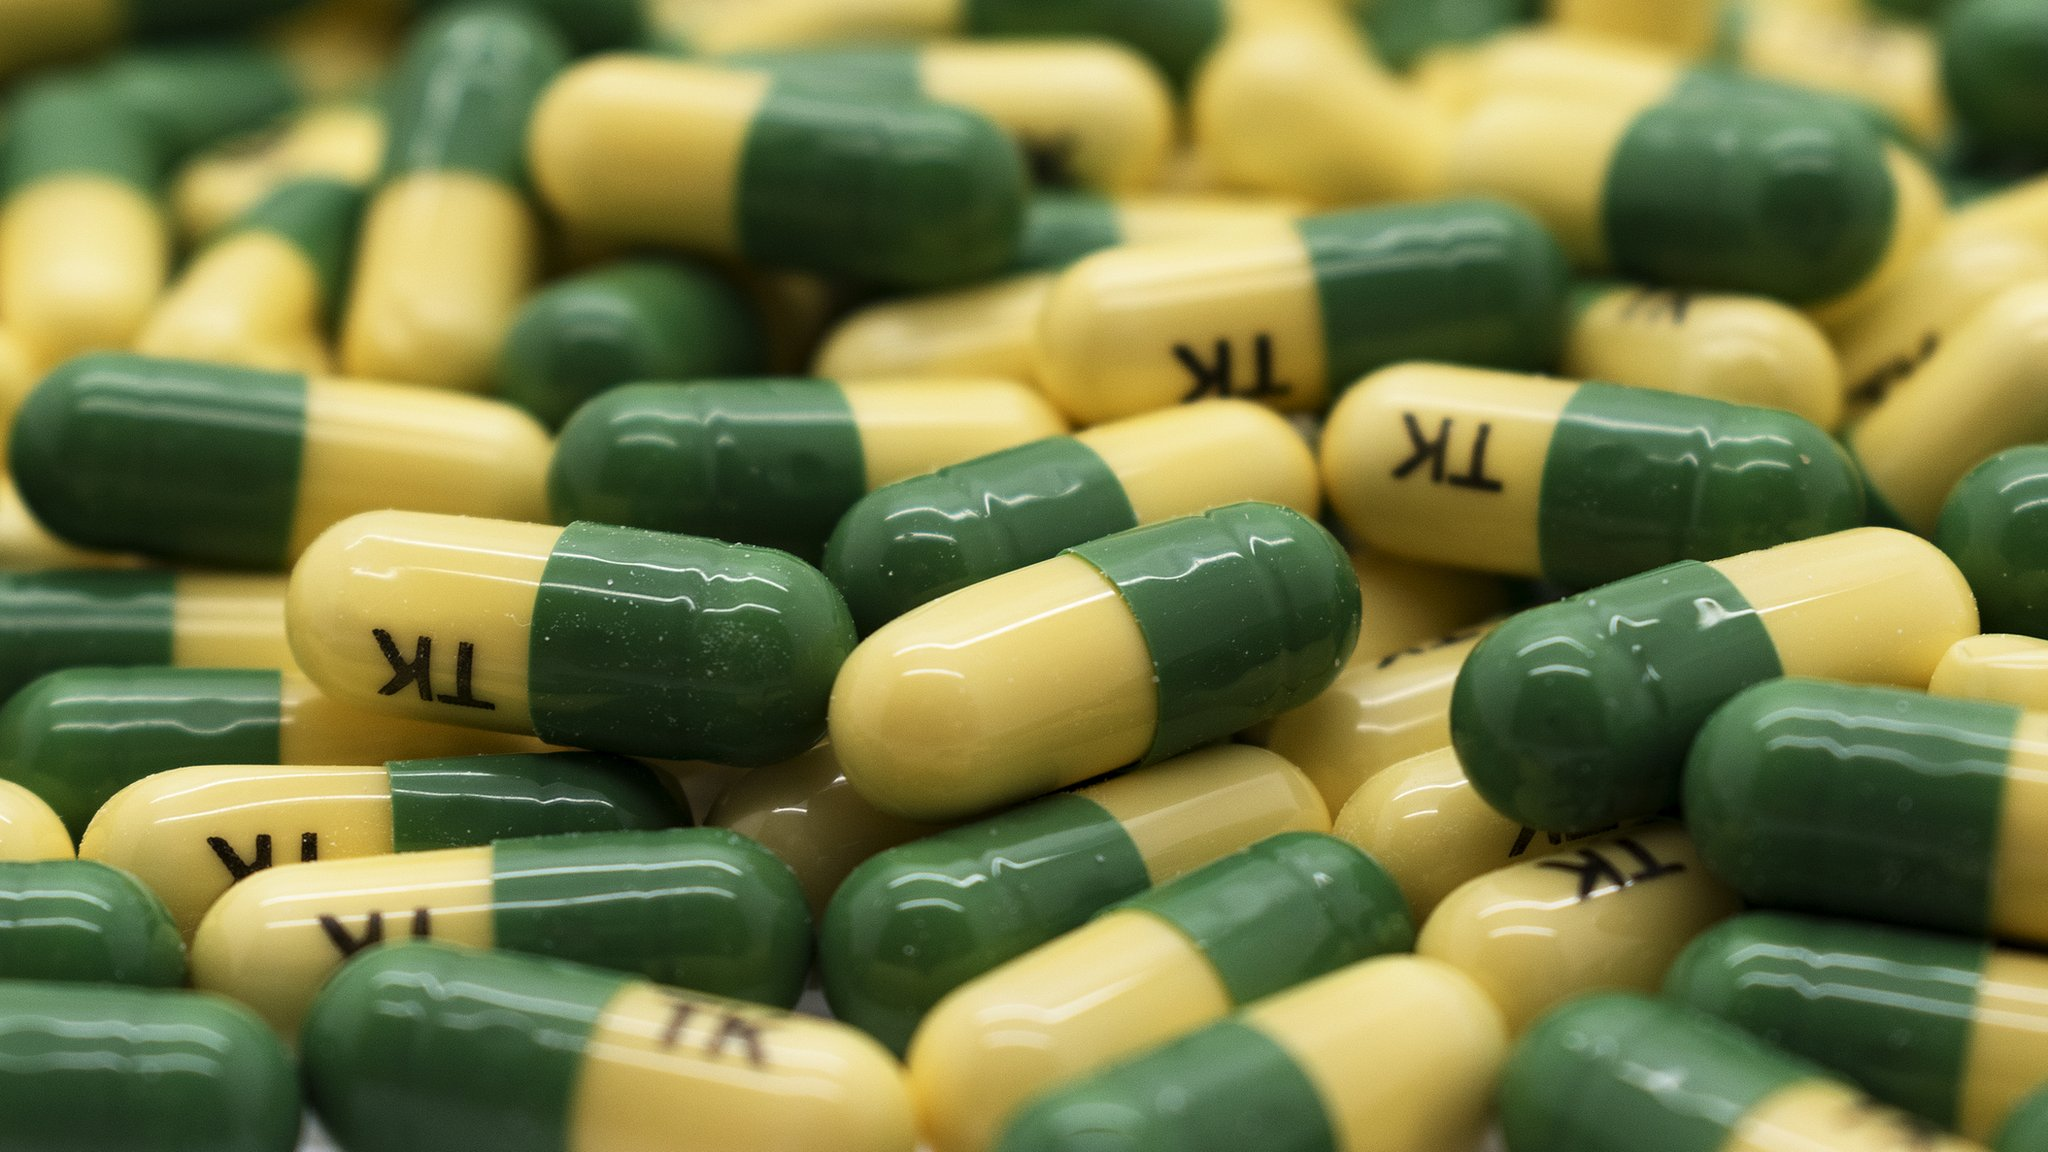 Tramadol: UCI bans painkiller in competition from March